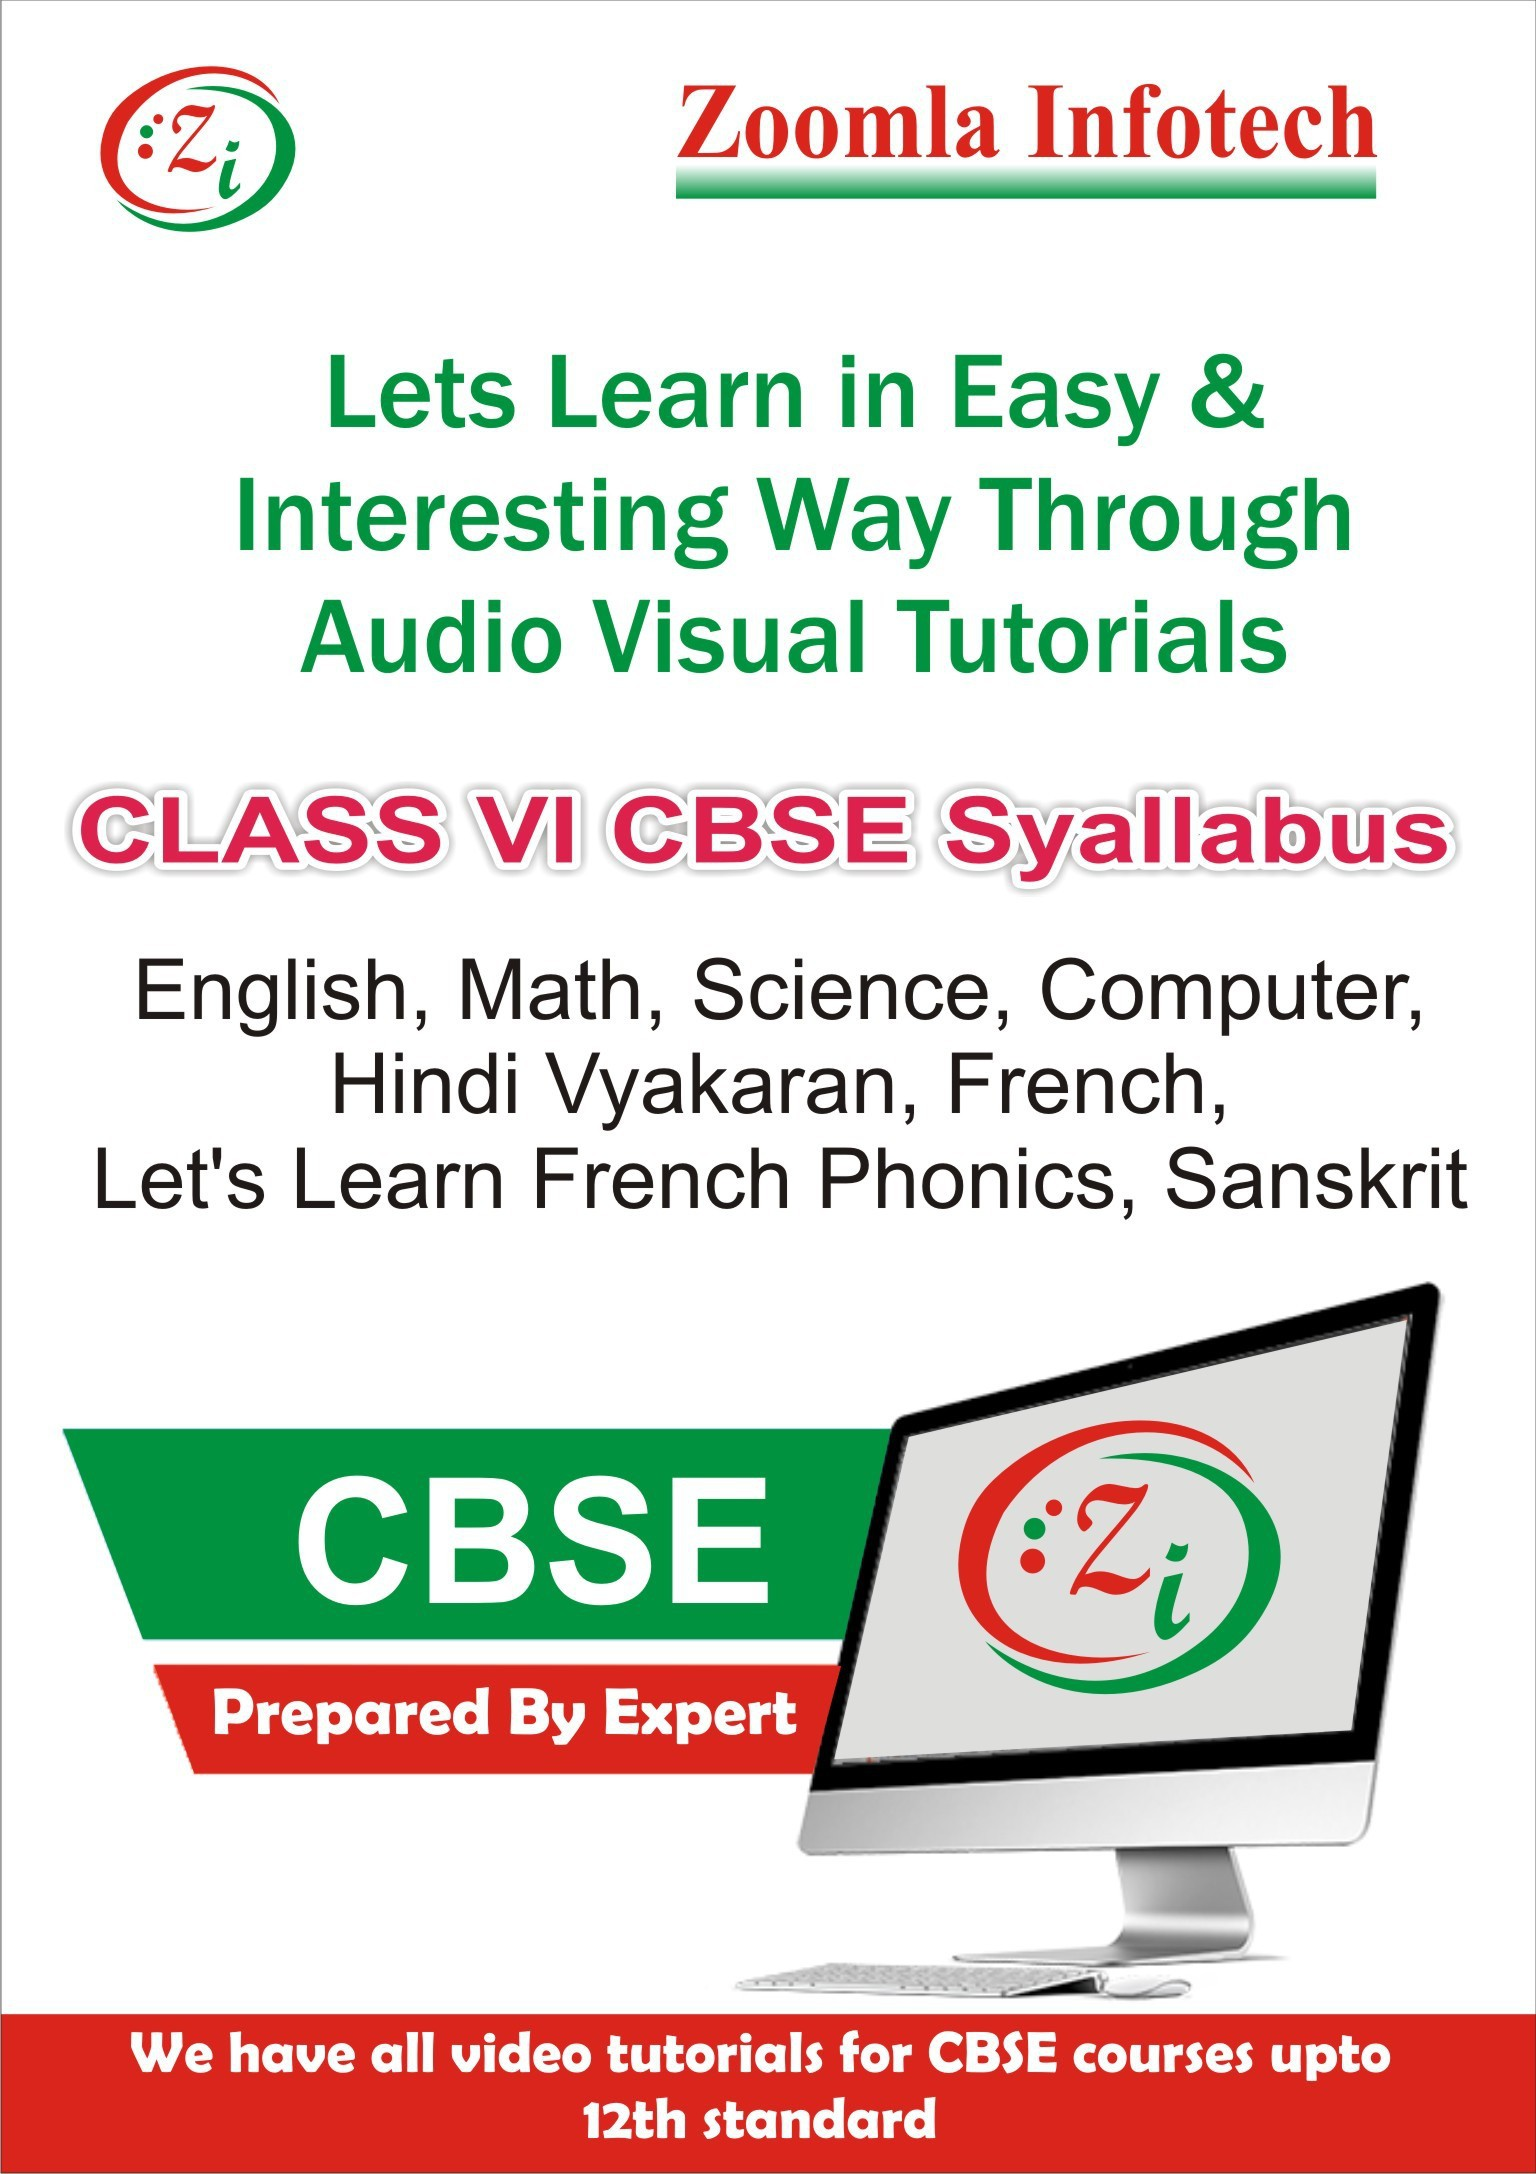 Zoomla Infotech Class 6 CBSE English, Maths, Science, Computer, Hindi Vyakaran, French, Lets Learn French Phonics, Sanskrit Video Tutorials(DVD)